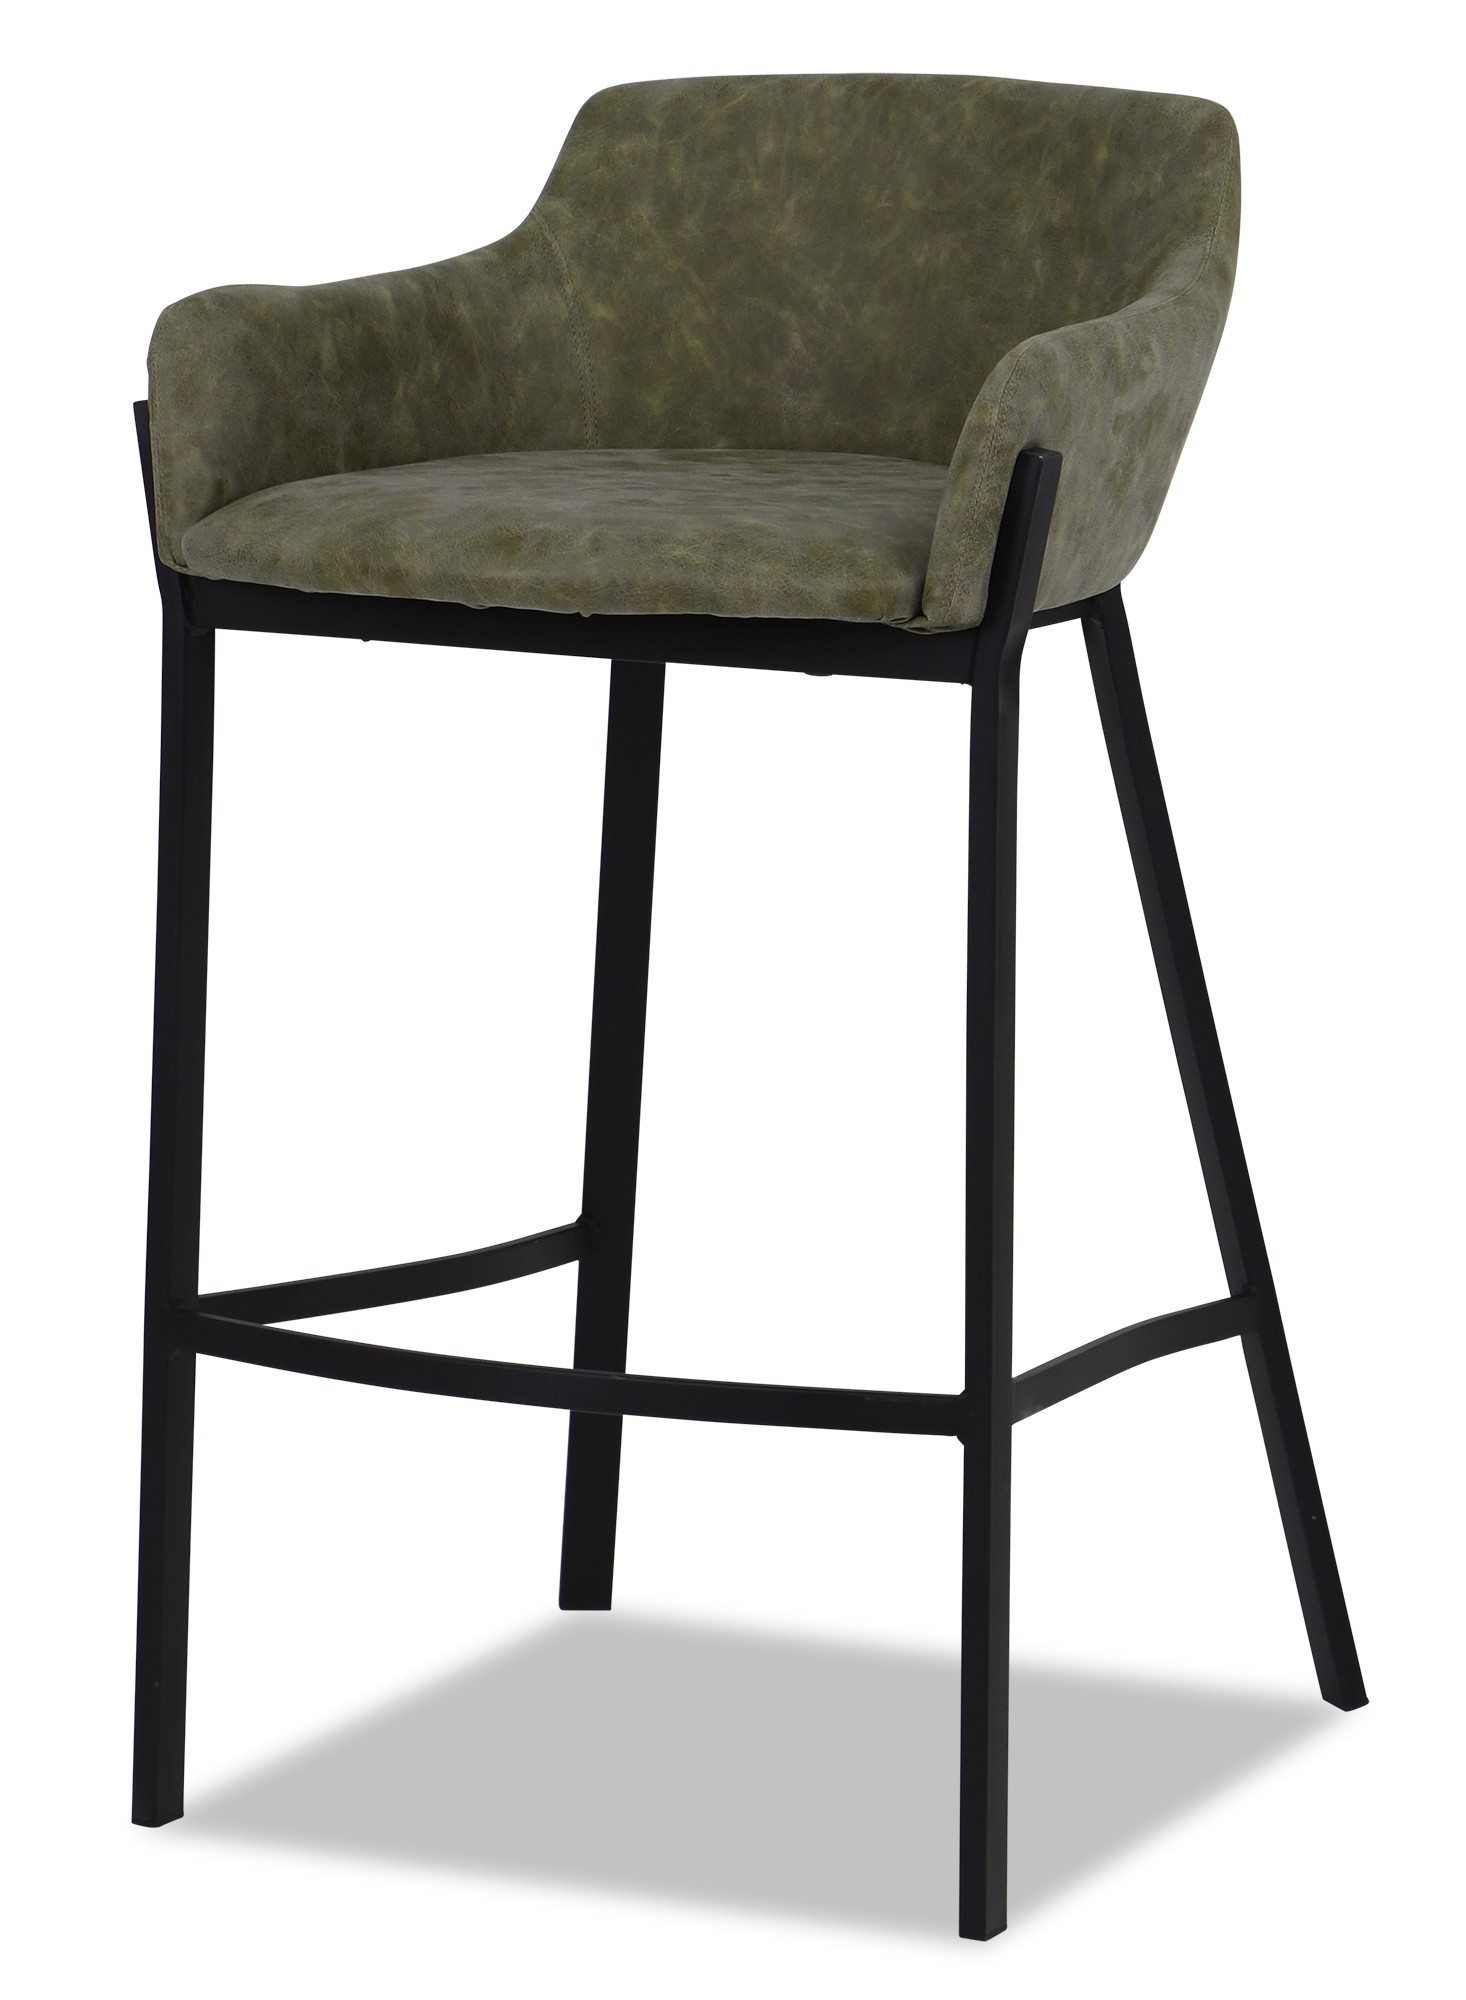 Elia High Chair In Green Furniture Amp Home D 233 Cor Fortytwo